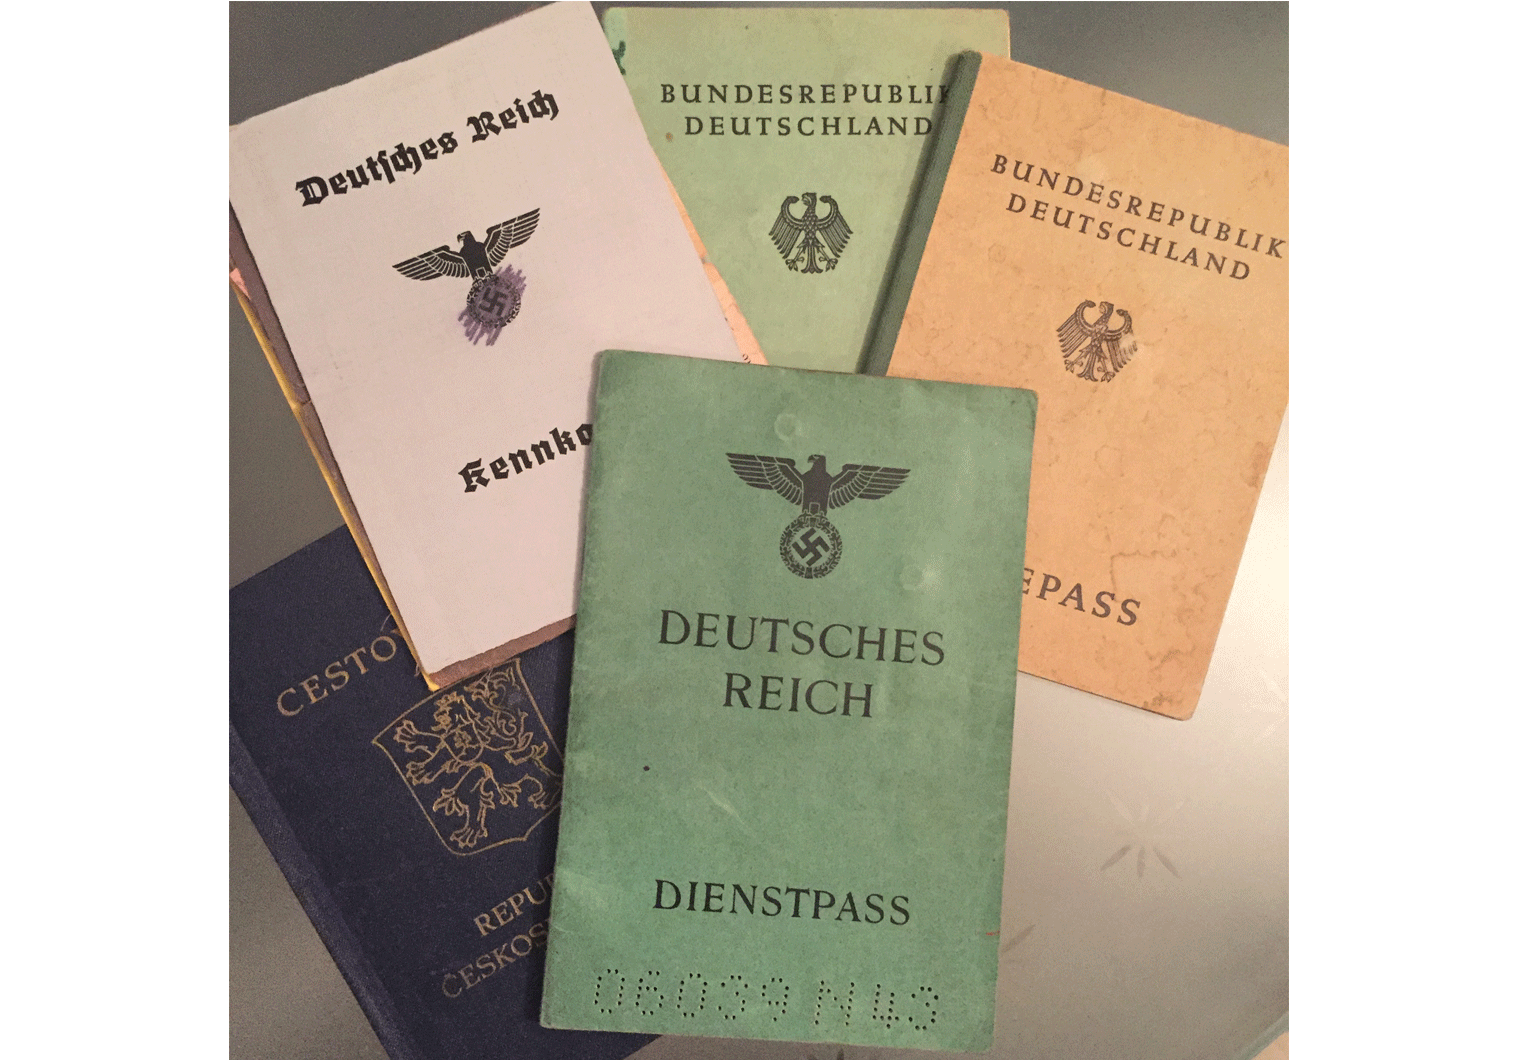 Why collect old passports? And what can we learn from them?